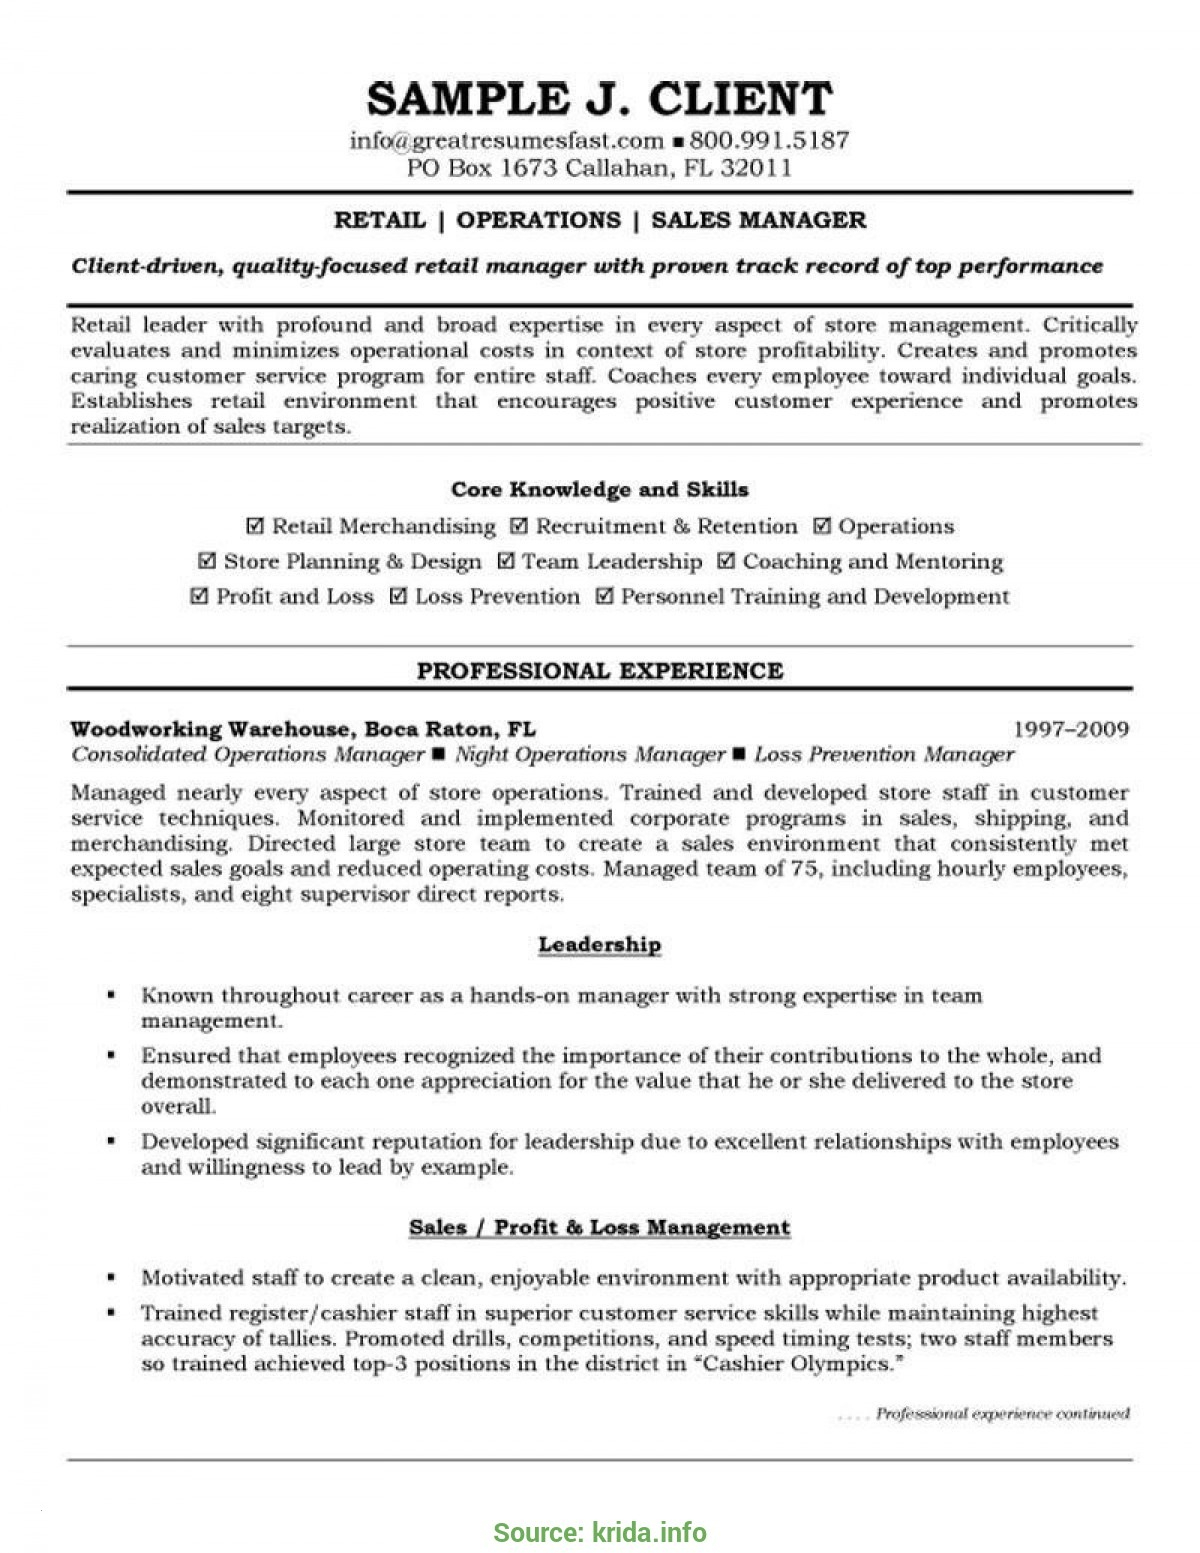 Retail Store Manager Resume Template - Retail Store Manager Resume Example Best Retail Management Resume